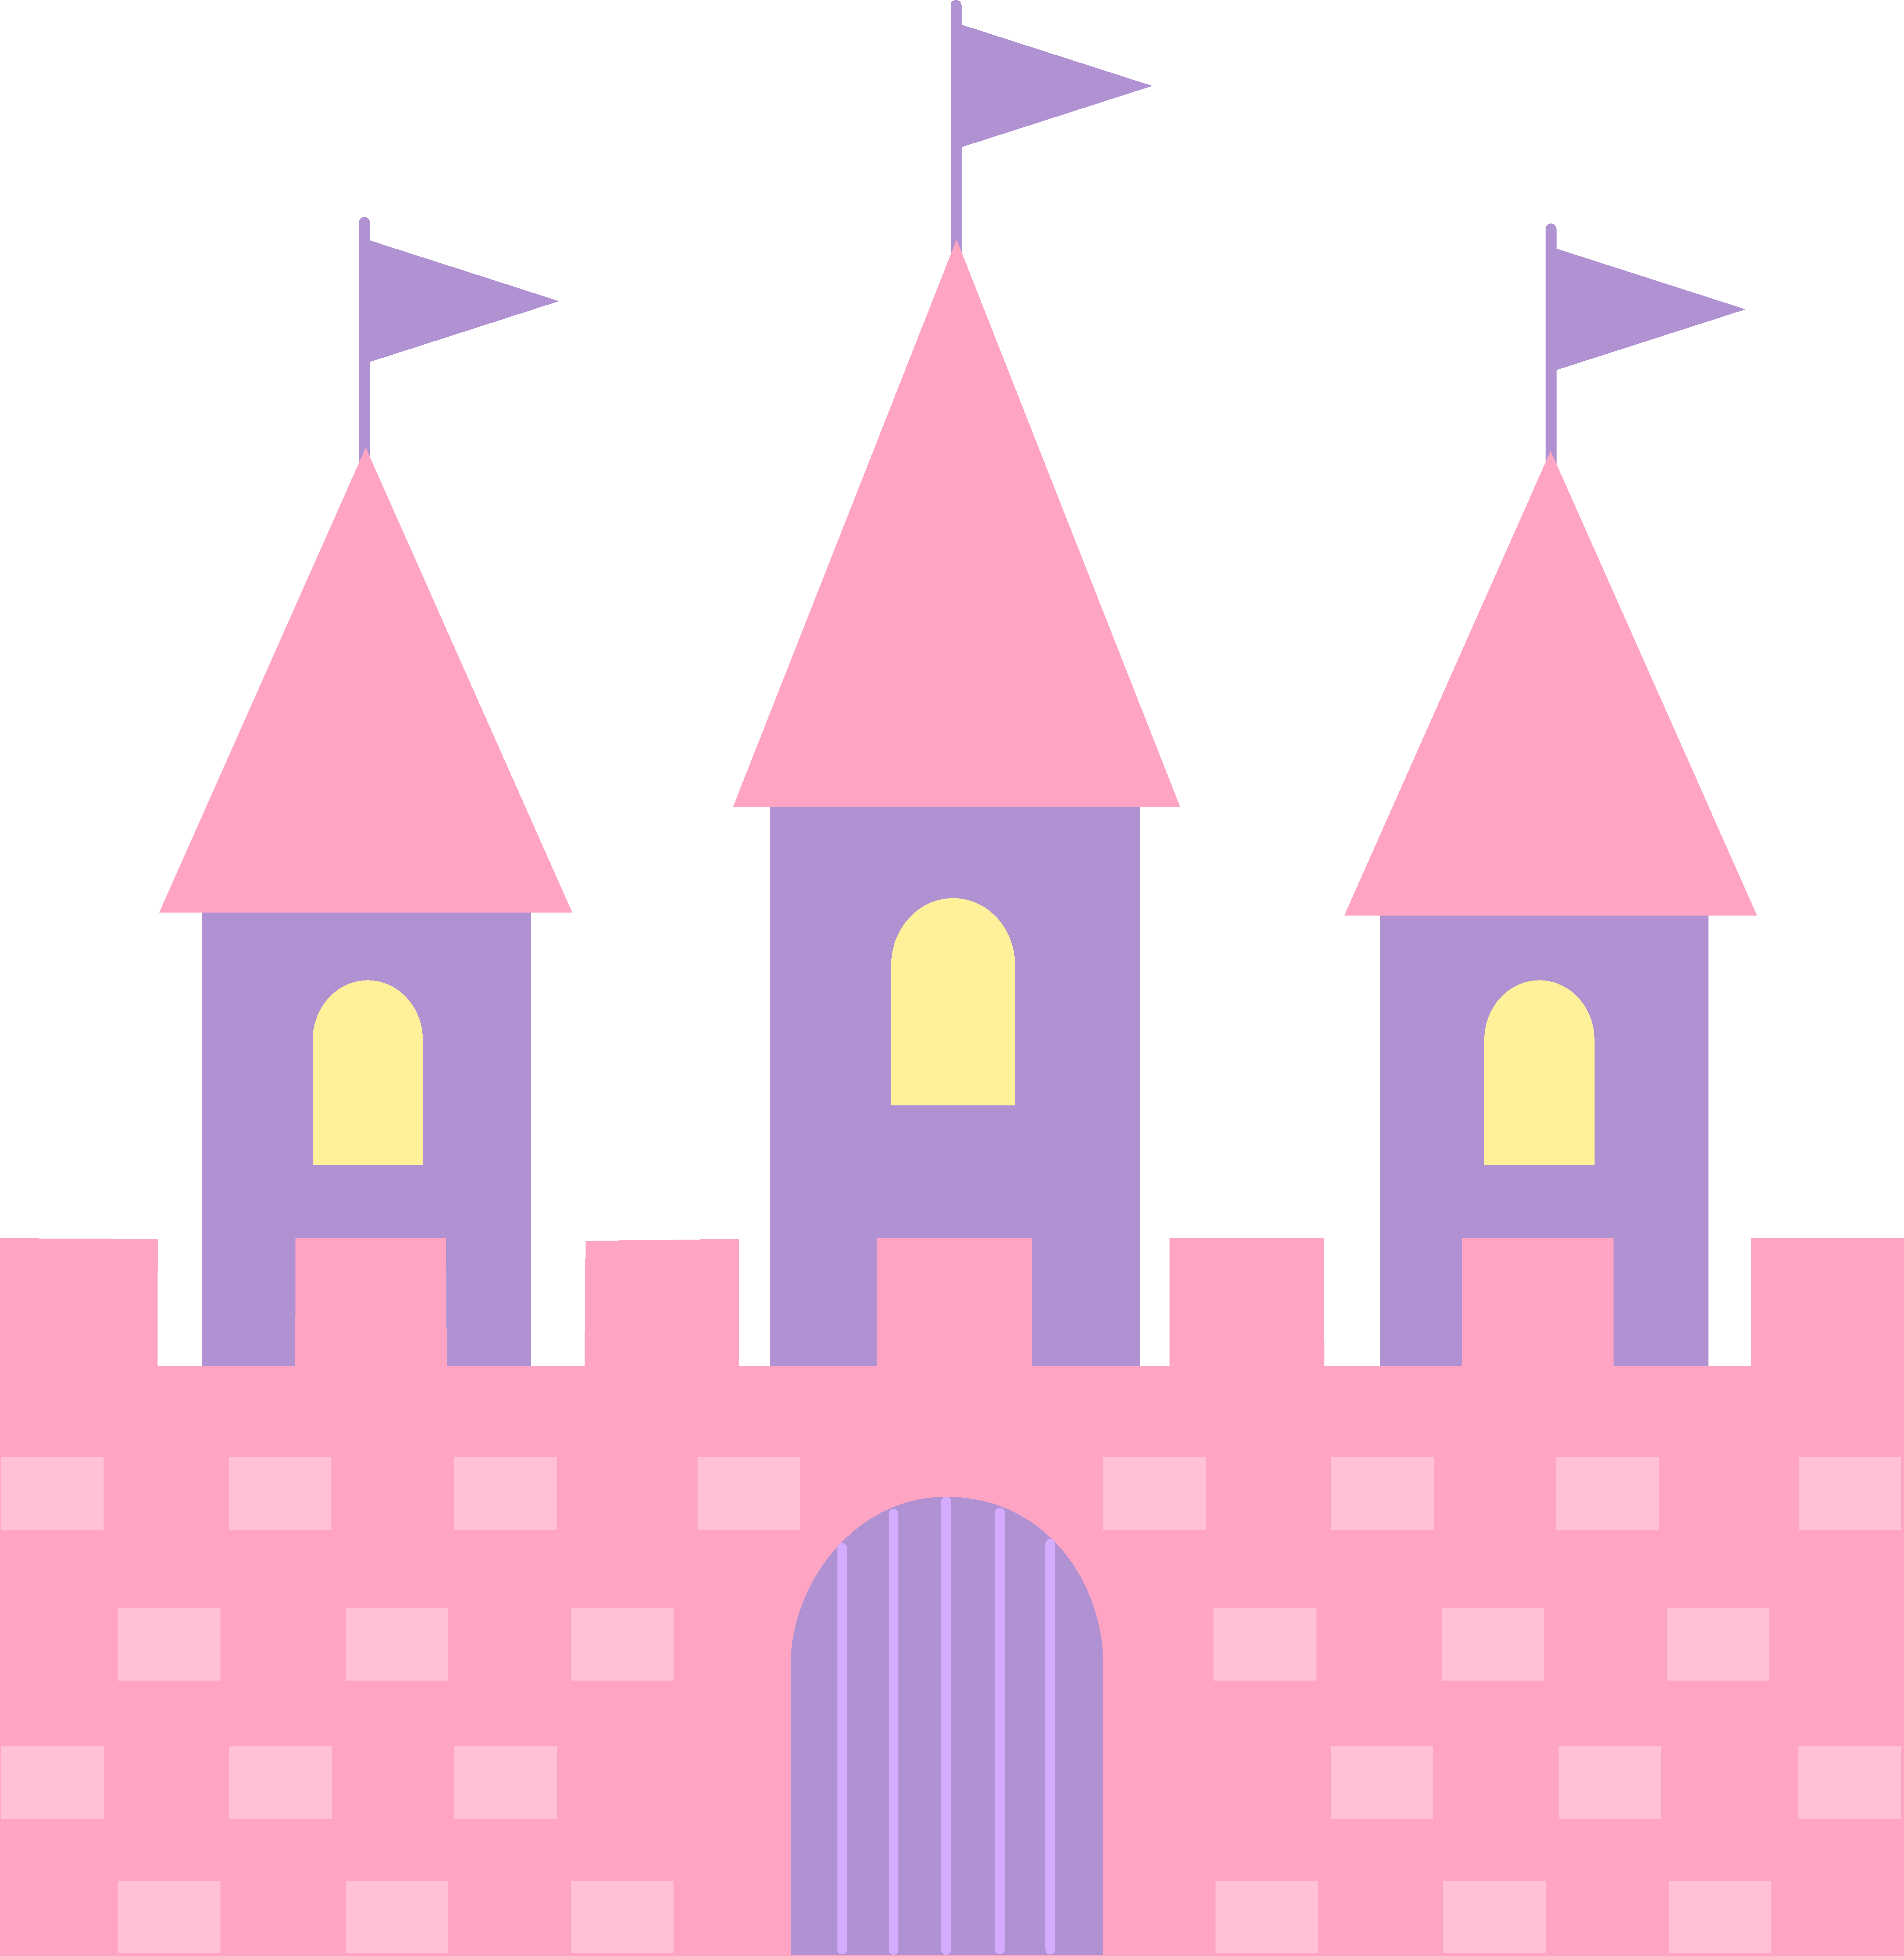 Palace clipart castle welsh. Cinderella disney princess clip